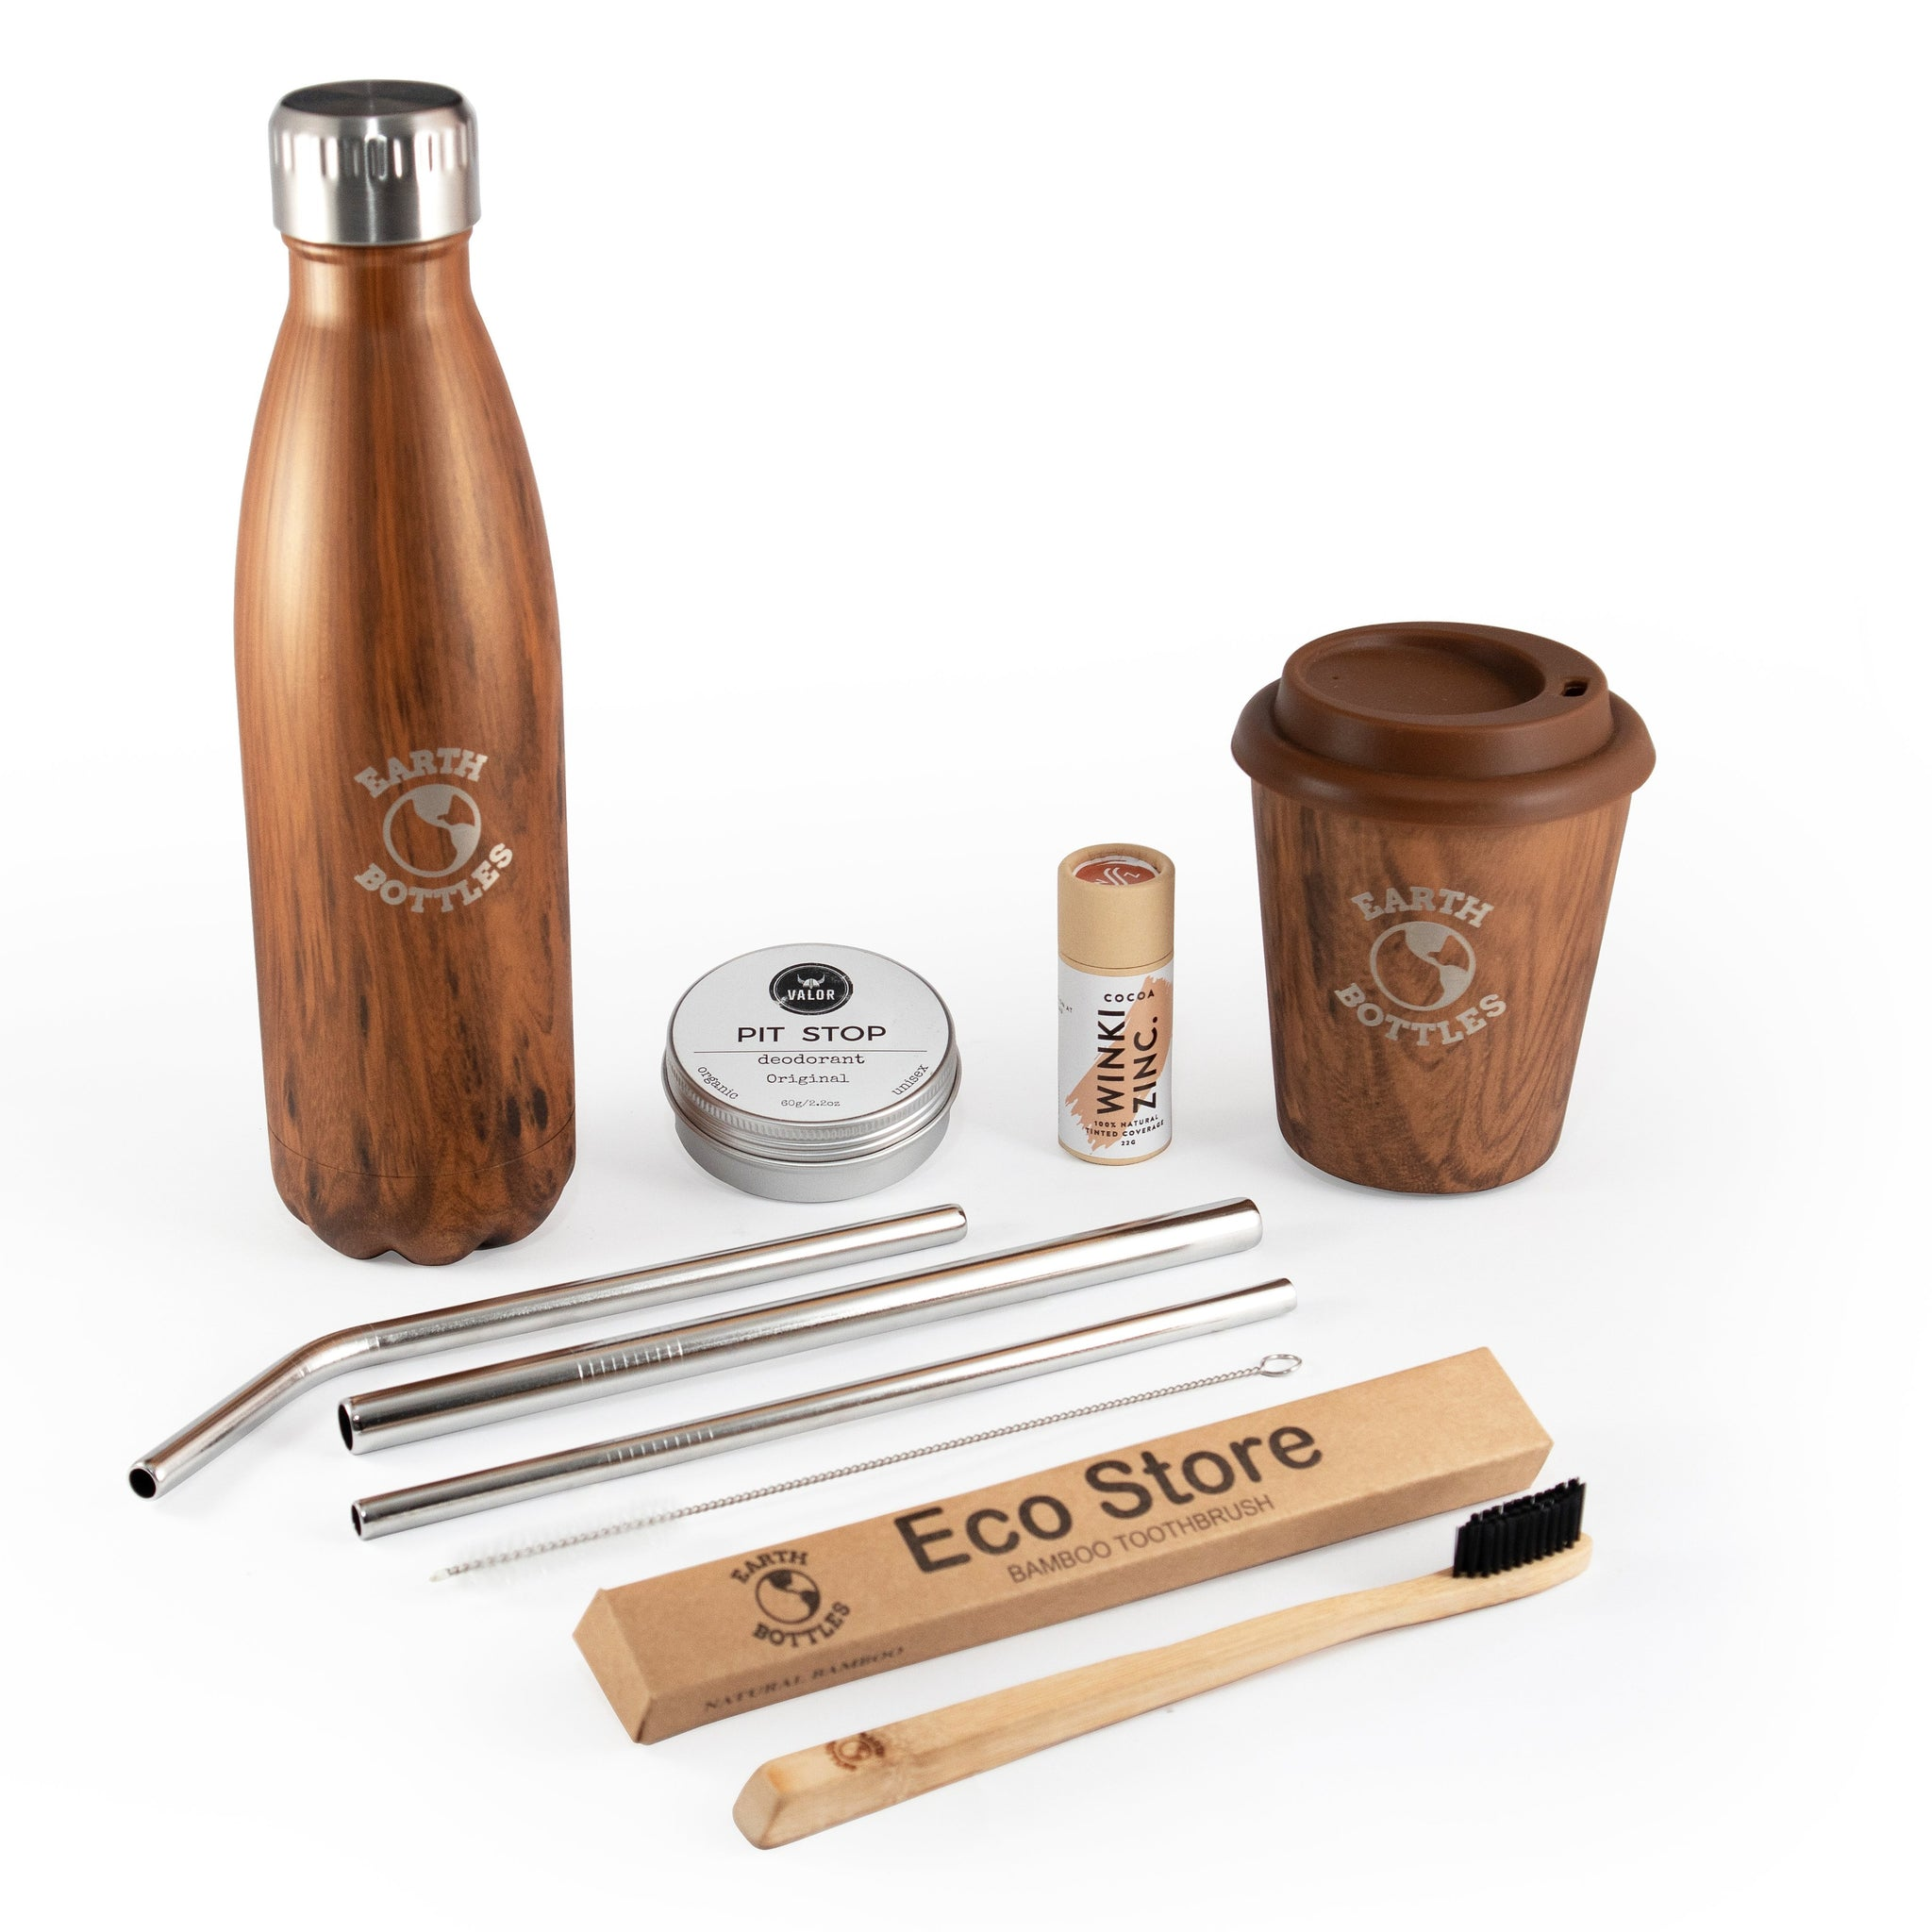 Zero Waste Travel Kit -  20% off RRP $147 now $117.60